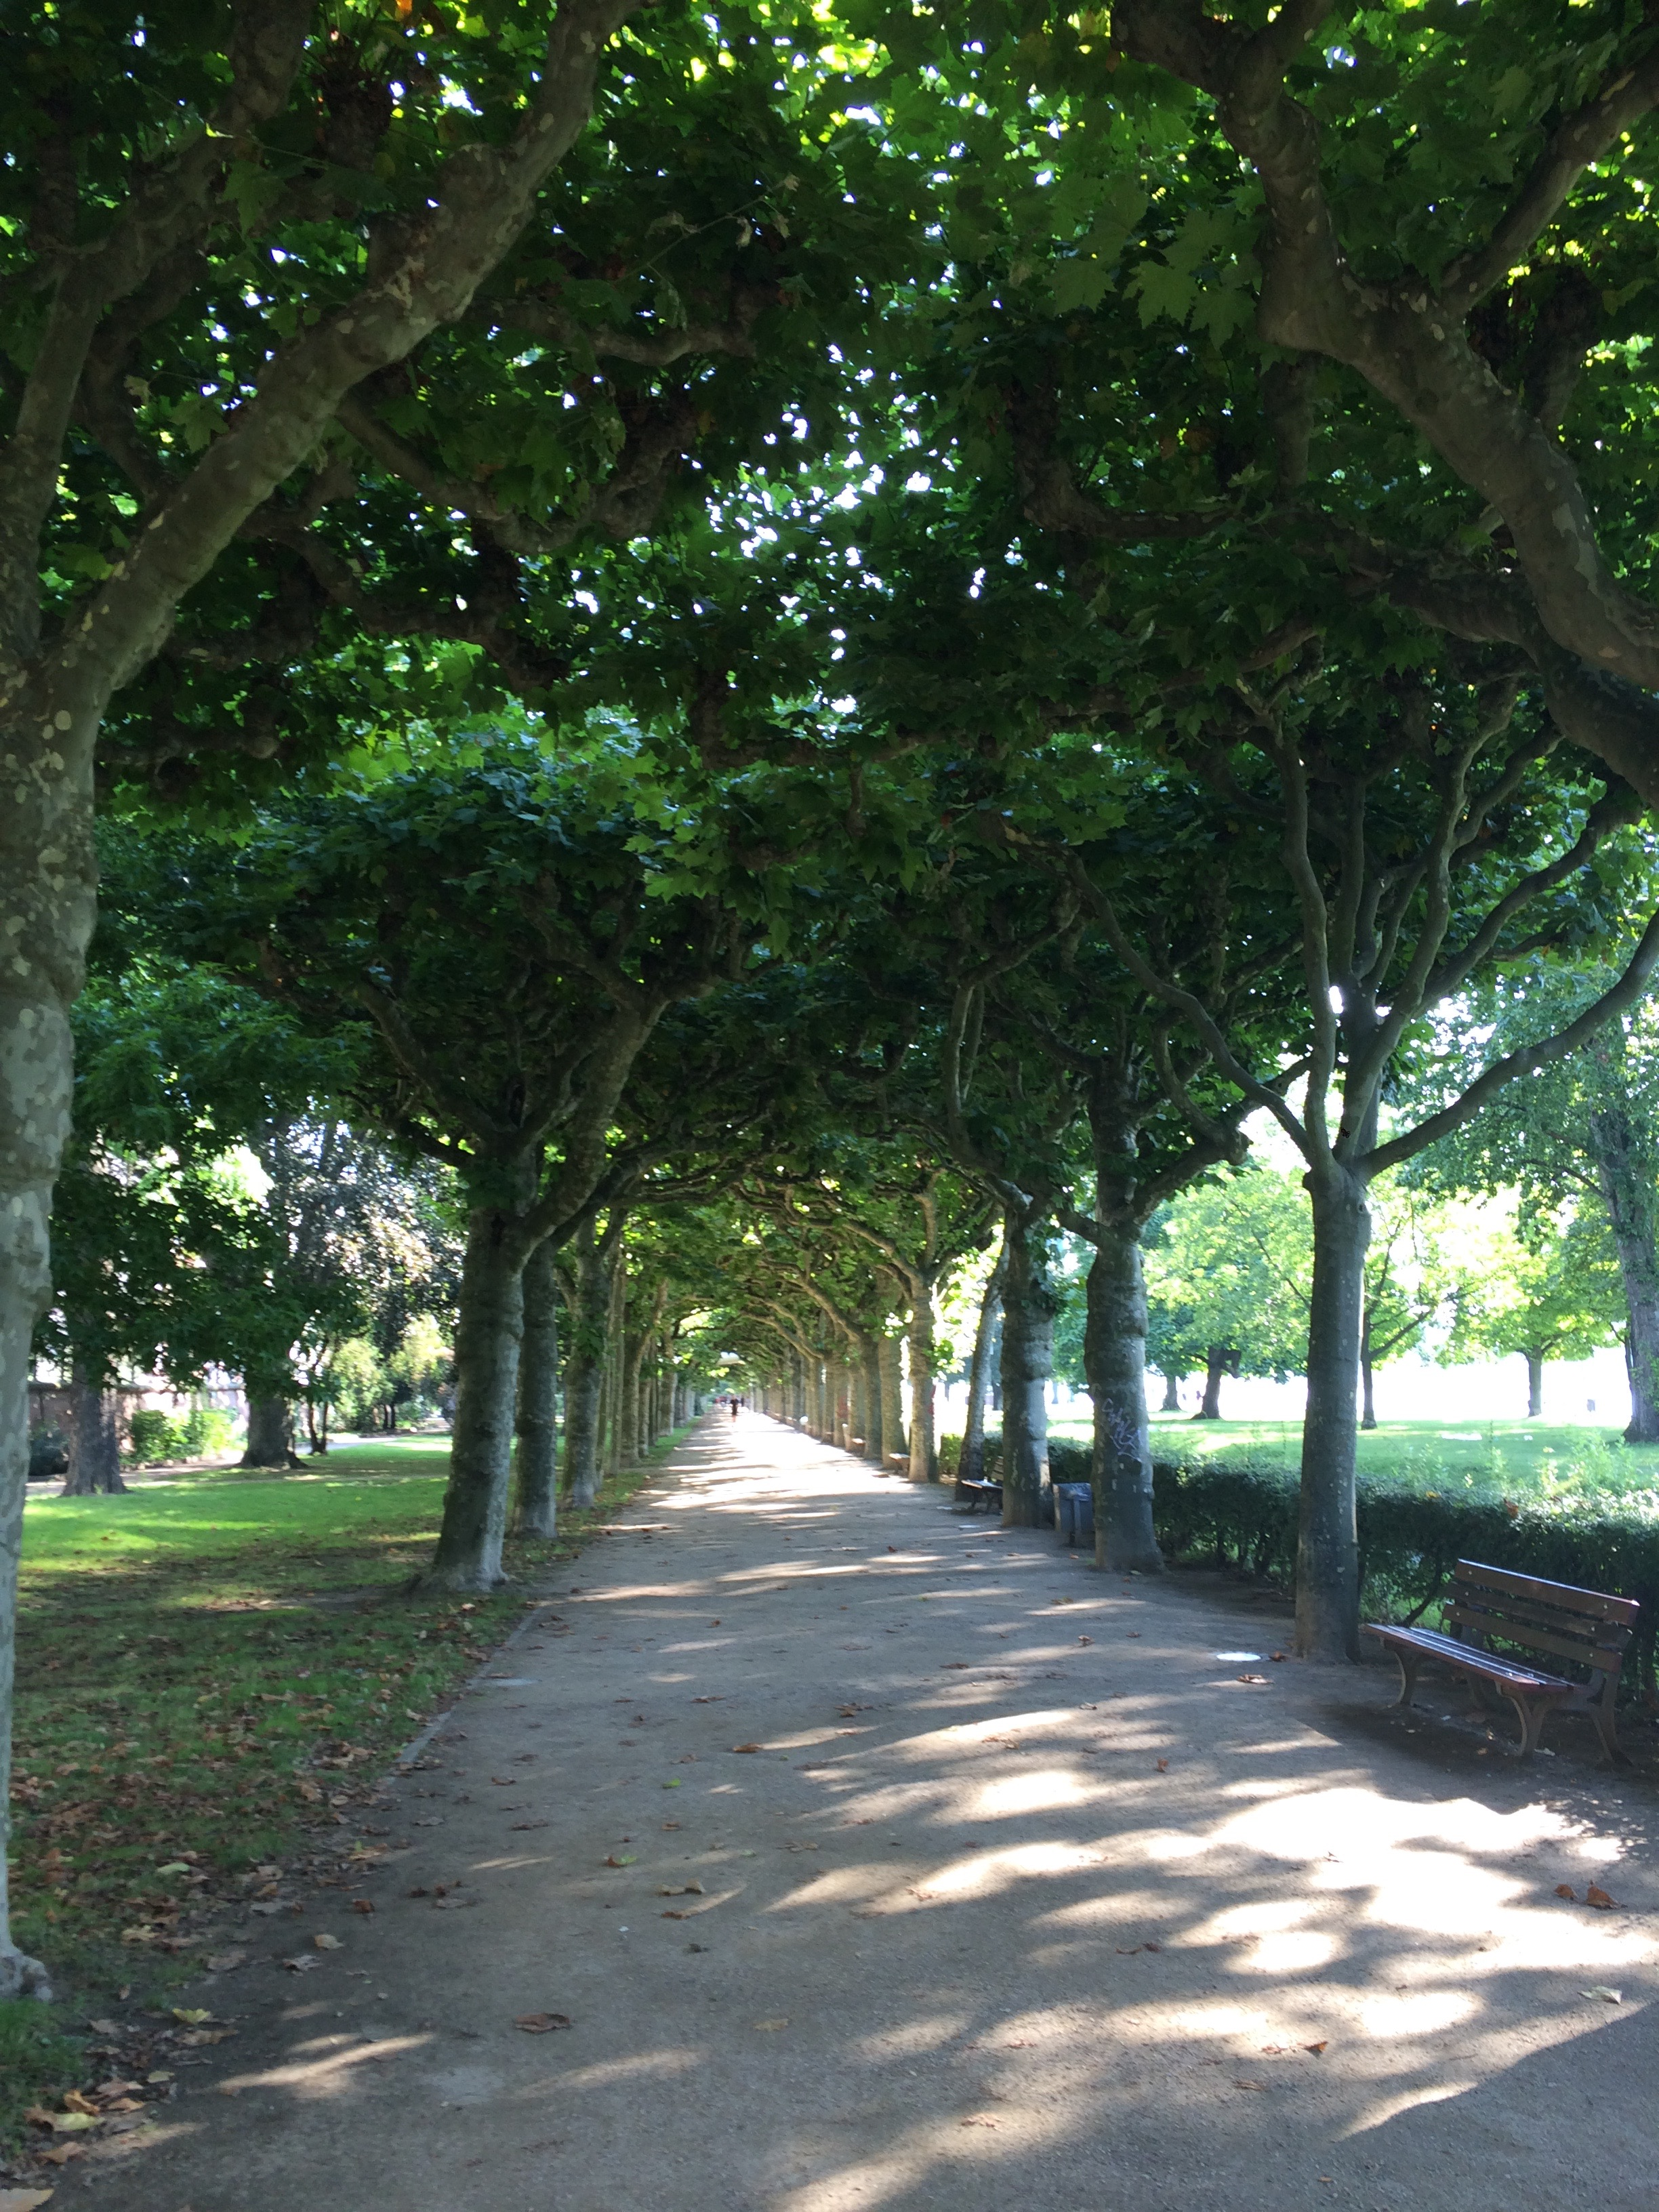 Tree lined walk along Main River, Frankfurt, Germany.